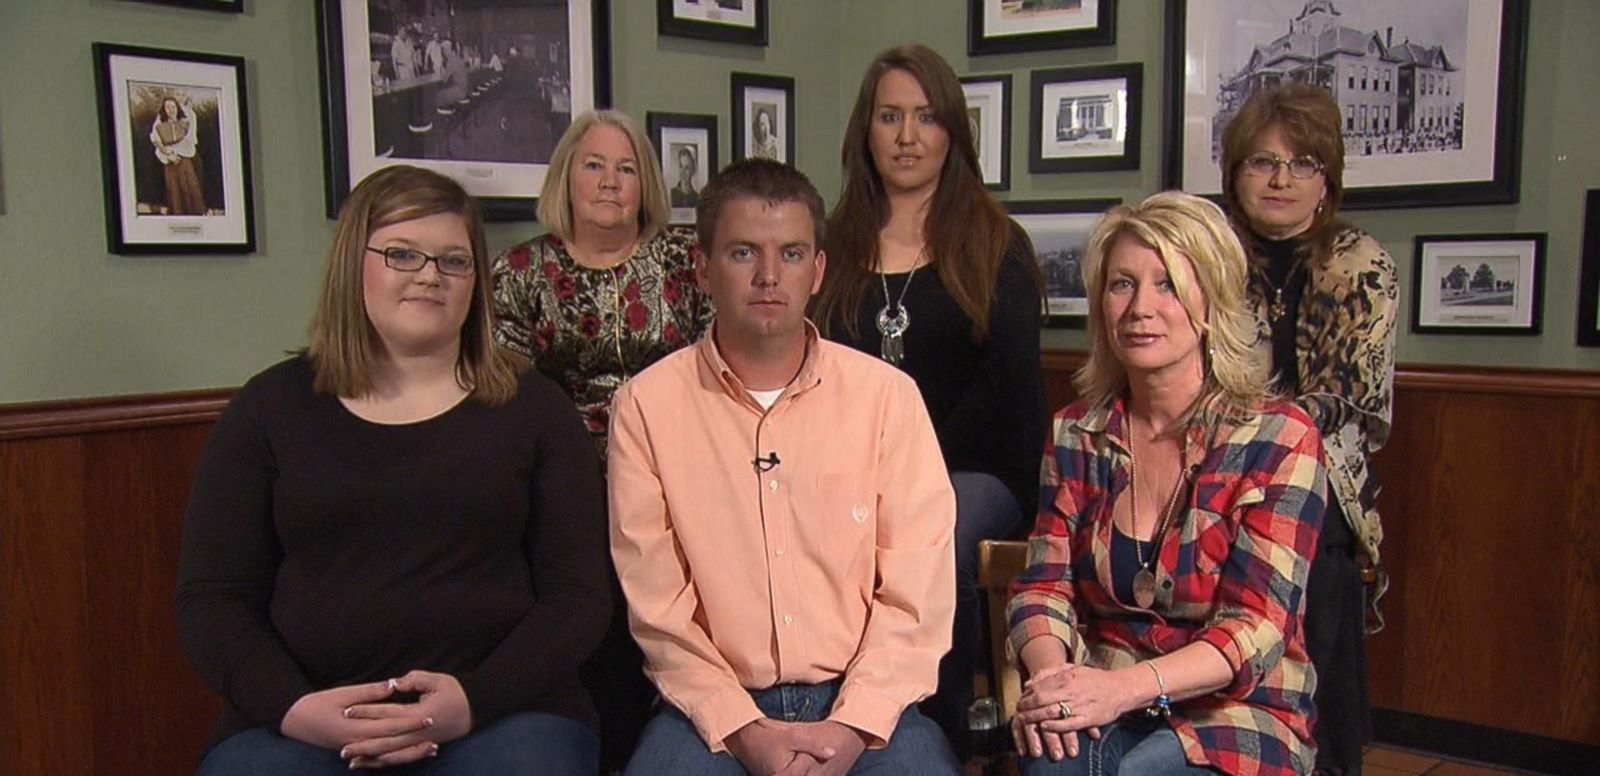 VIDEO: 'American Sniper' Jurors Give Interview About Case's Verdict